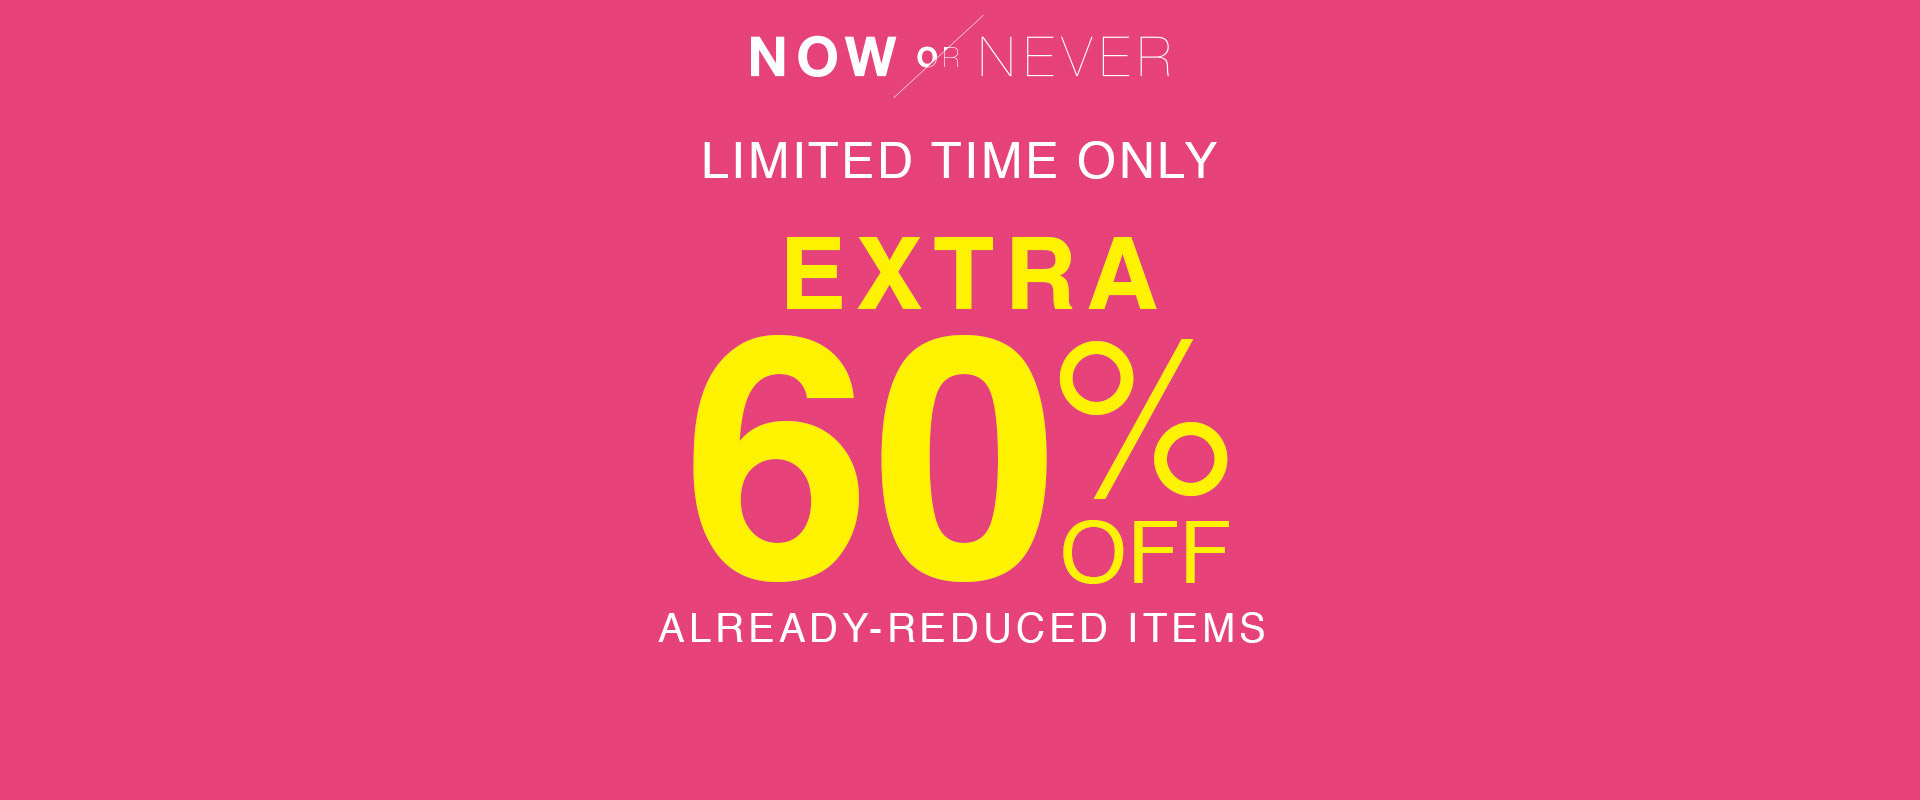 extra 60% off already-reduced items